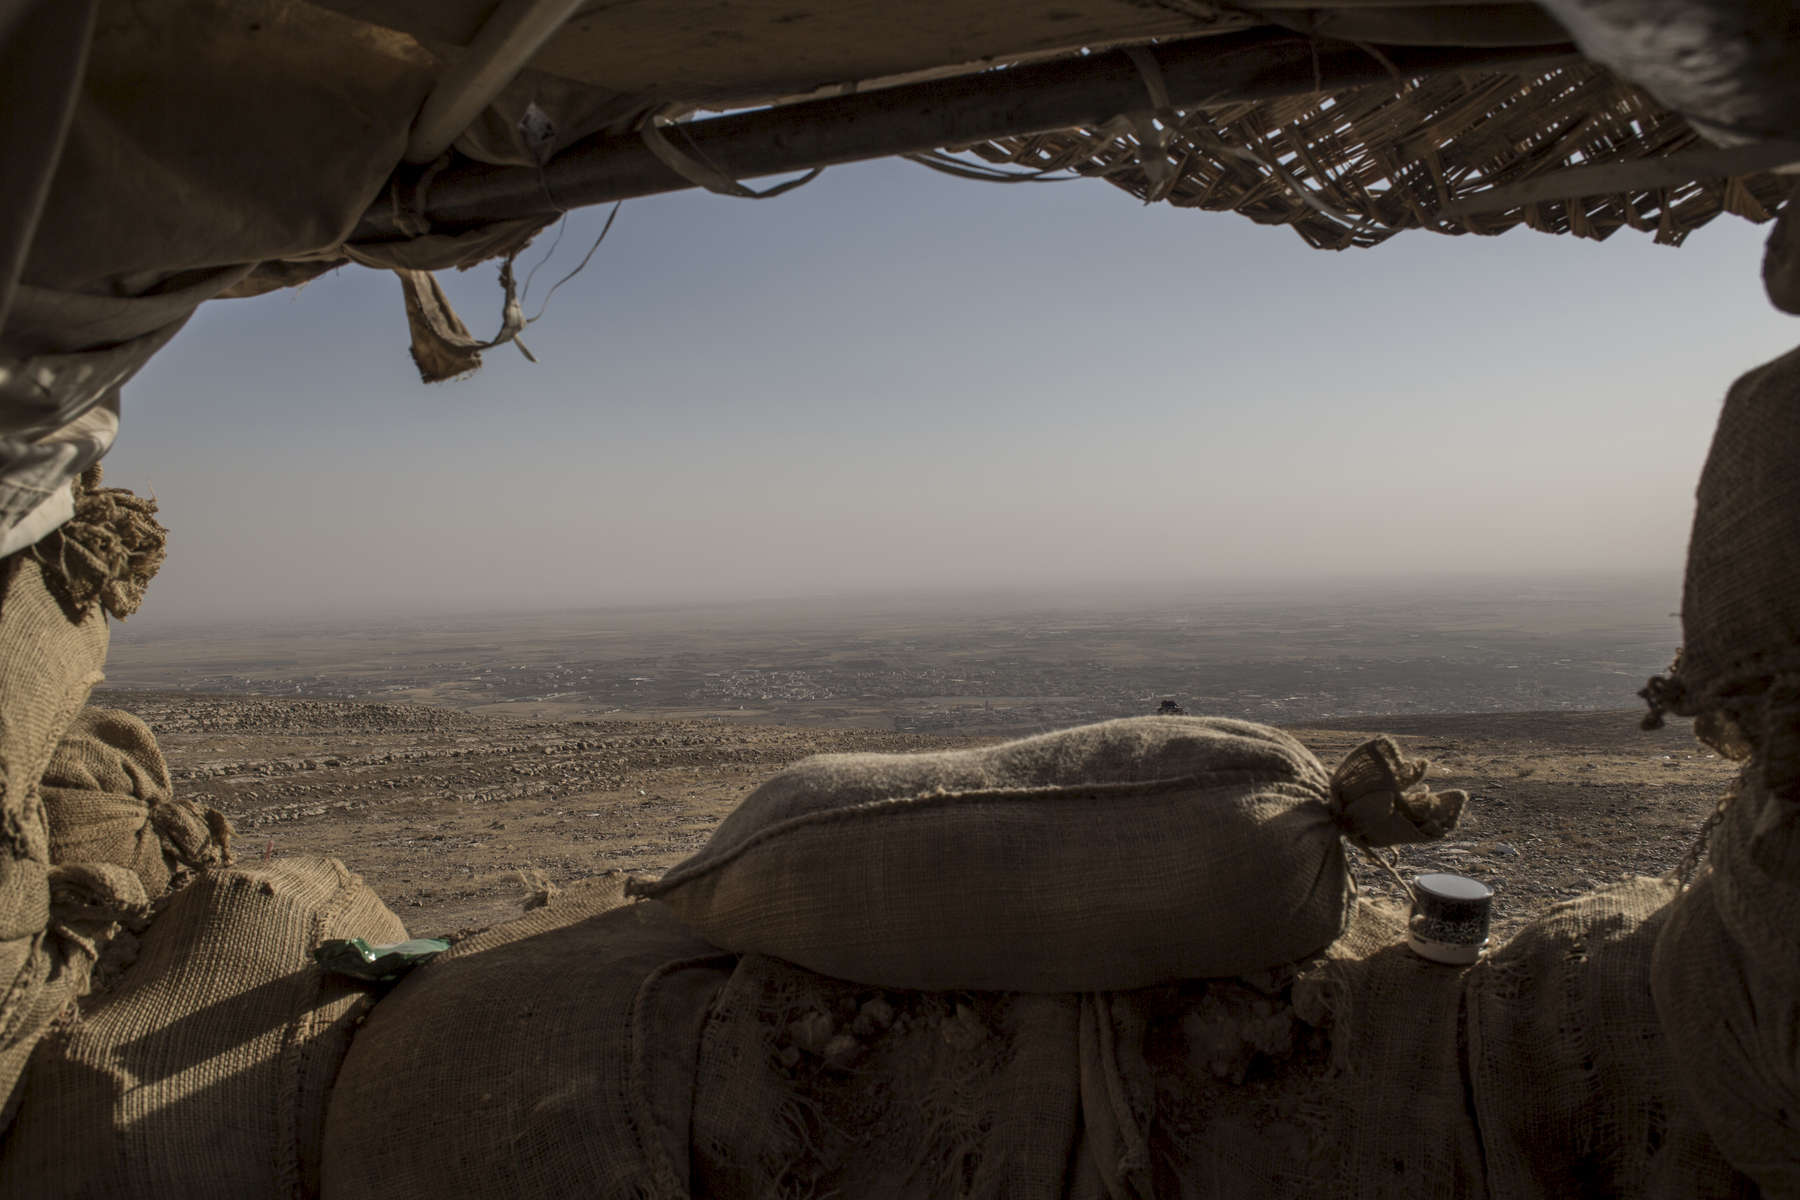 01/09/2016 -- Bashika, Iraq -- A Peshmerga frontline position looks out on the ISIS-occupied town of Bashiqa, one of dozens that remains to be retaken before the assault on Mosul can begin.